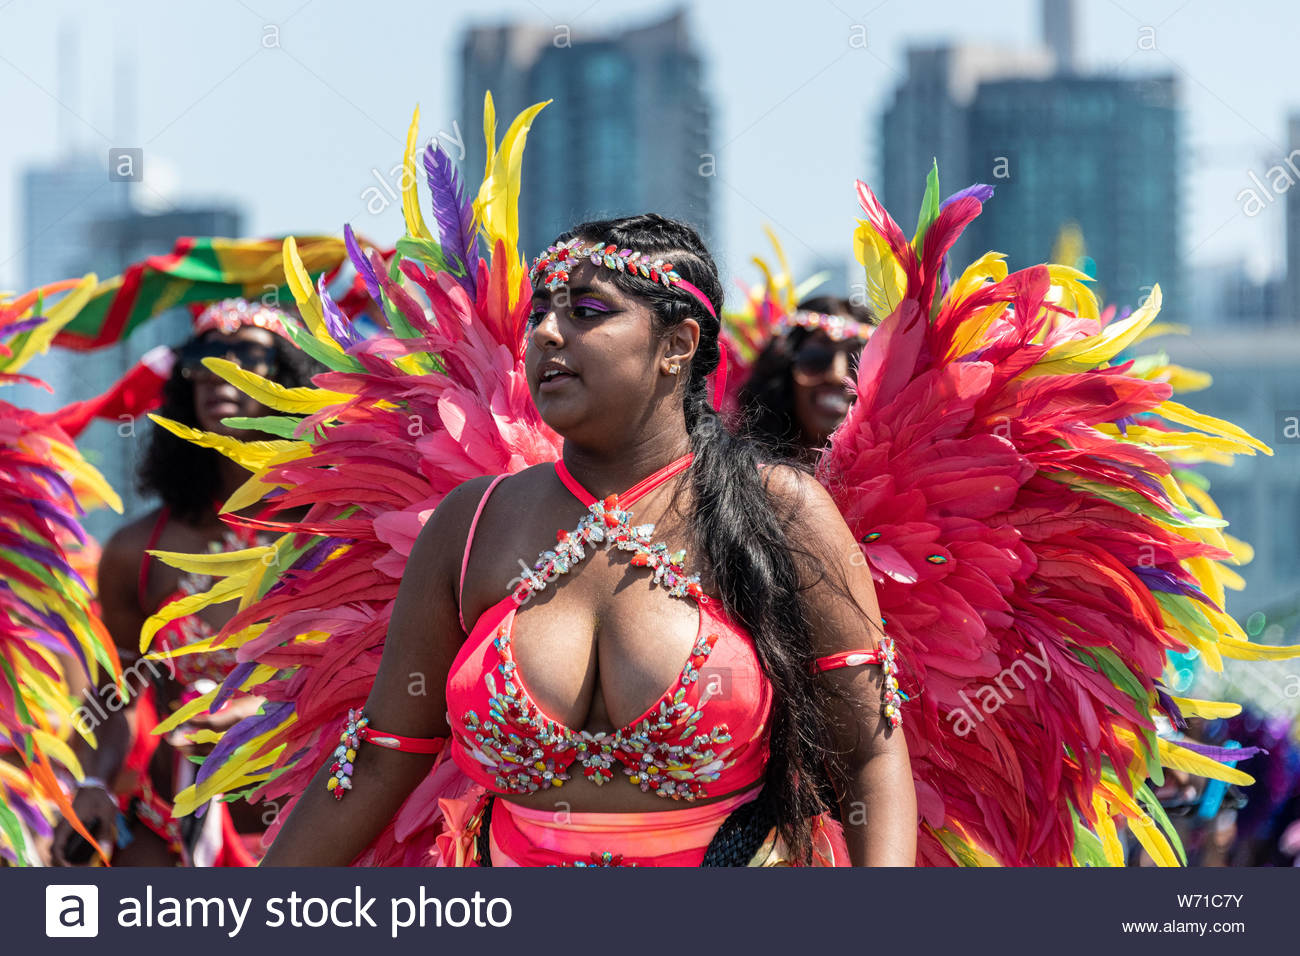 Caribana Parade In Toronto Stock Photos & Caribana Parade In